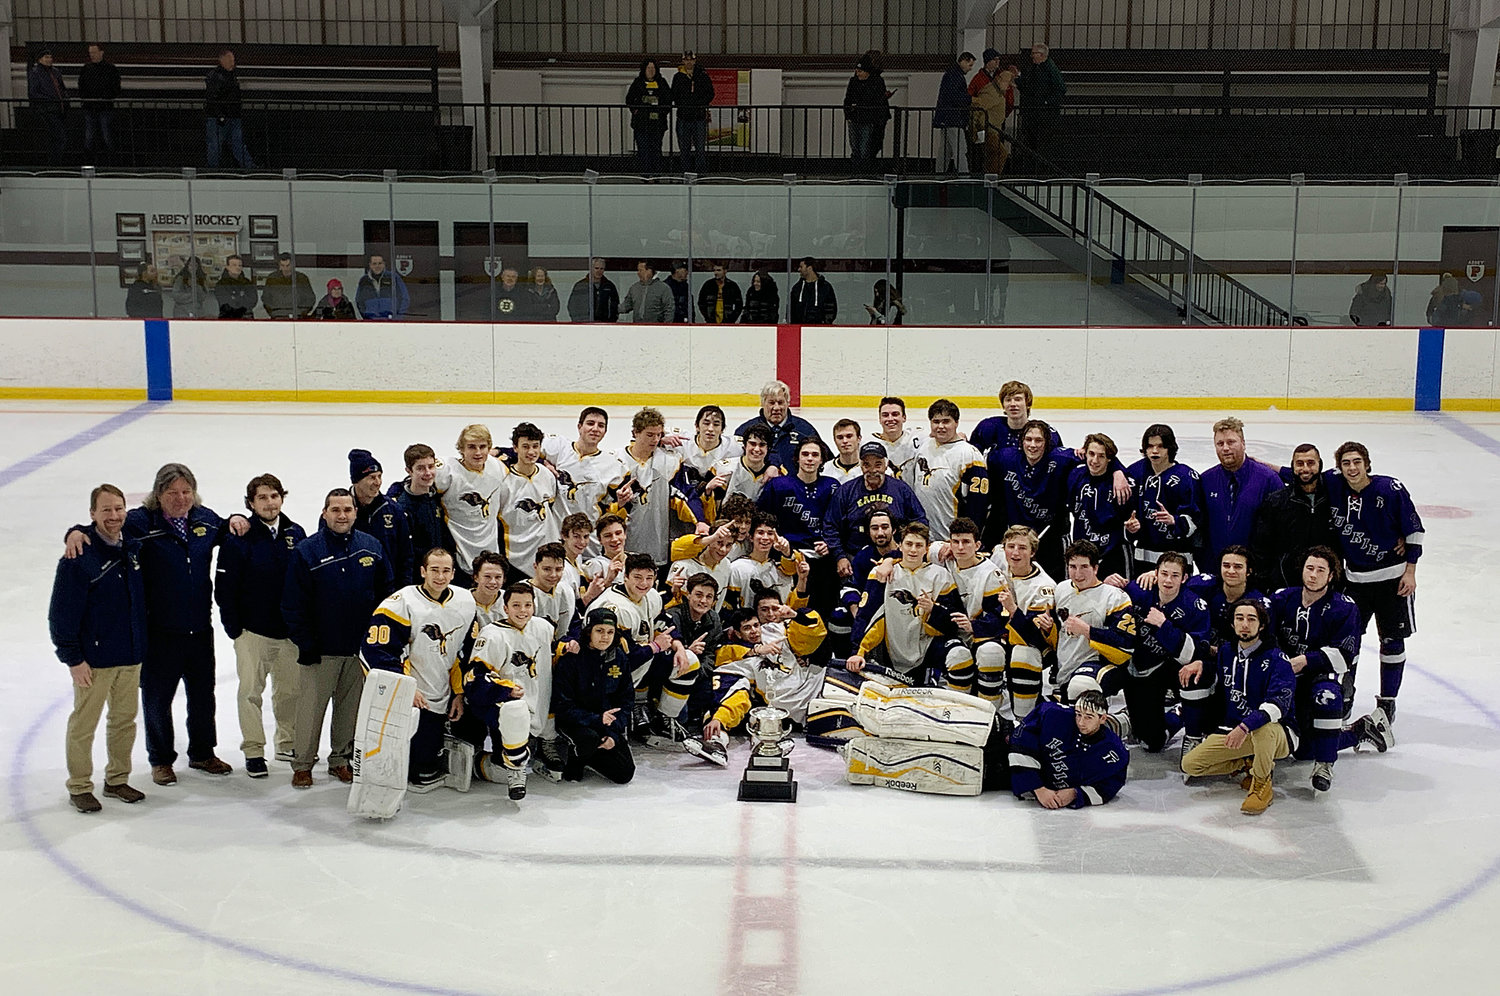 Members of the Barrington High School and Mt. Hope boys hockey teams gather for a group photo following the annual JP Medeiros Memorial Cup hockey game on Jan. 8. Barrington won, 8-1.